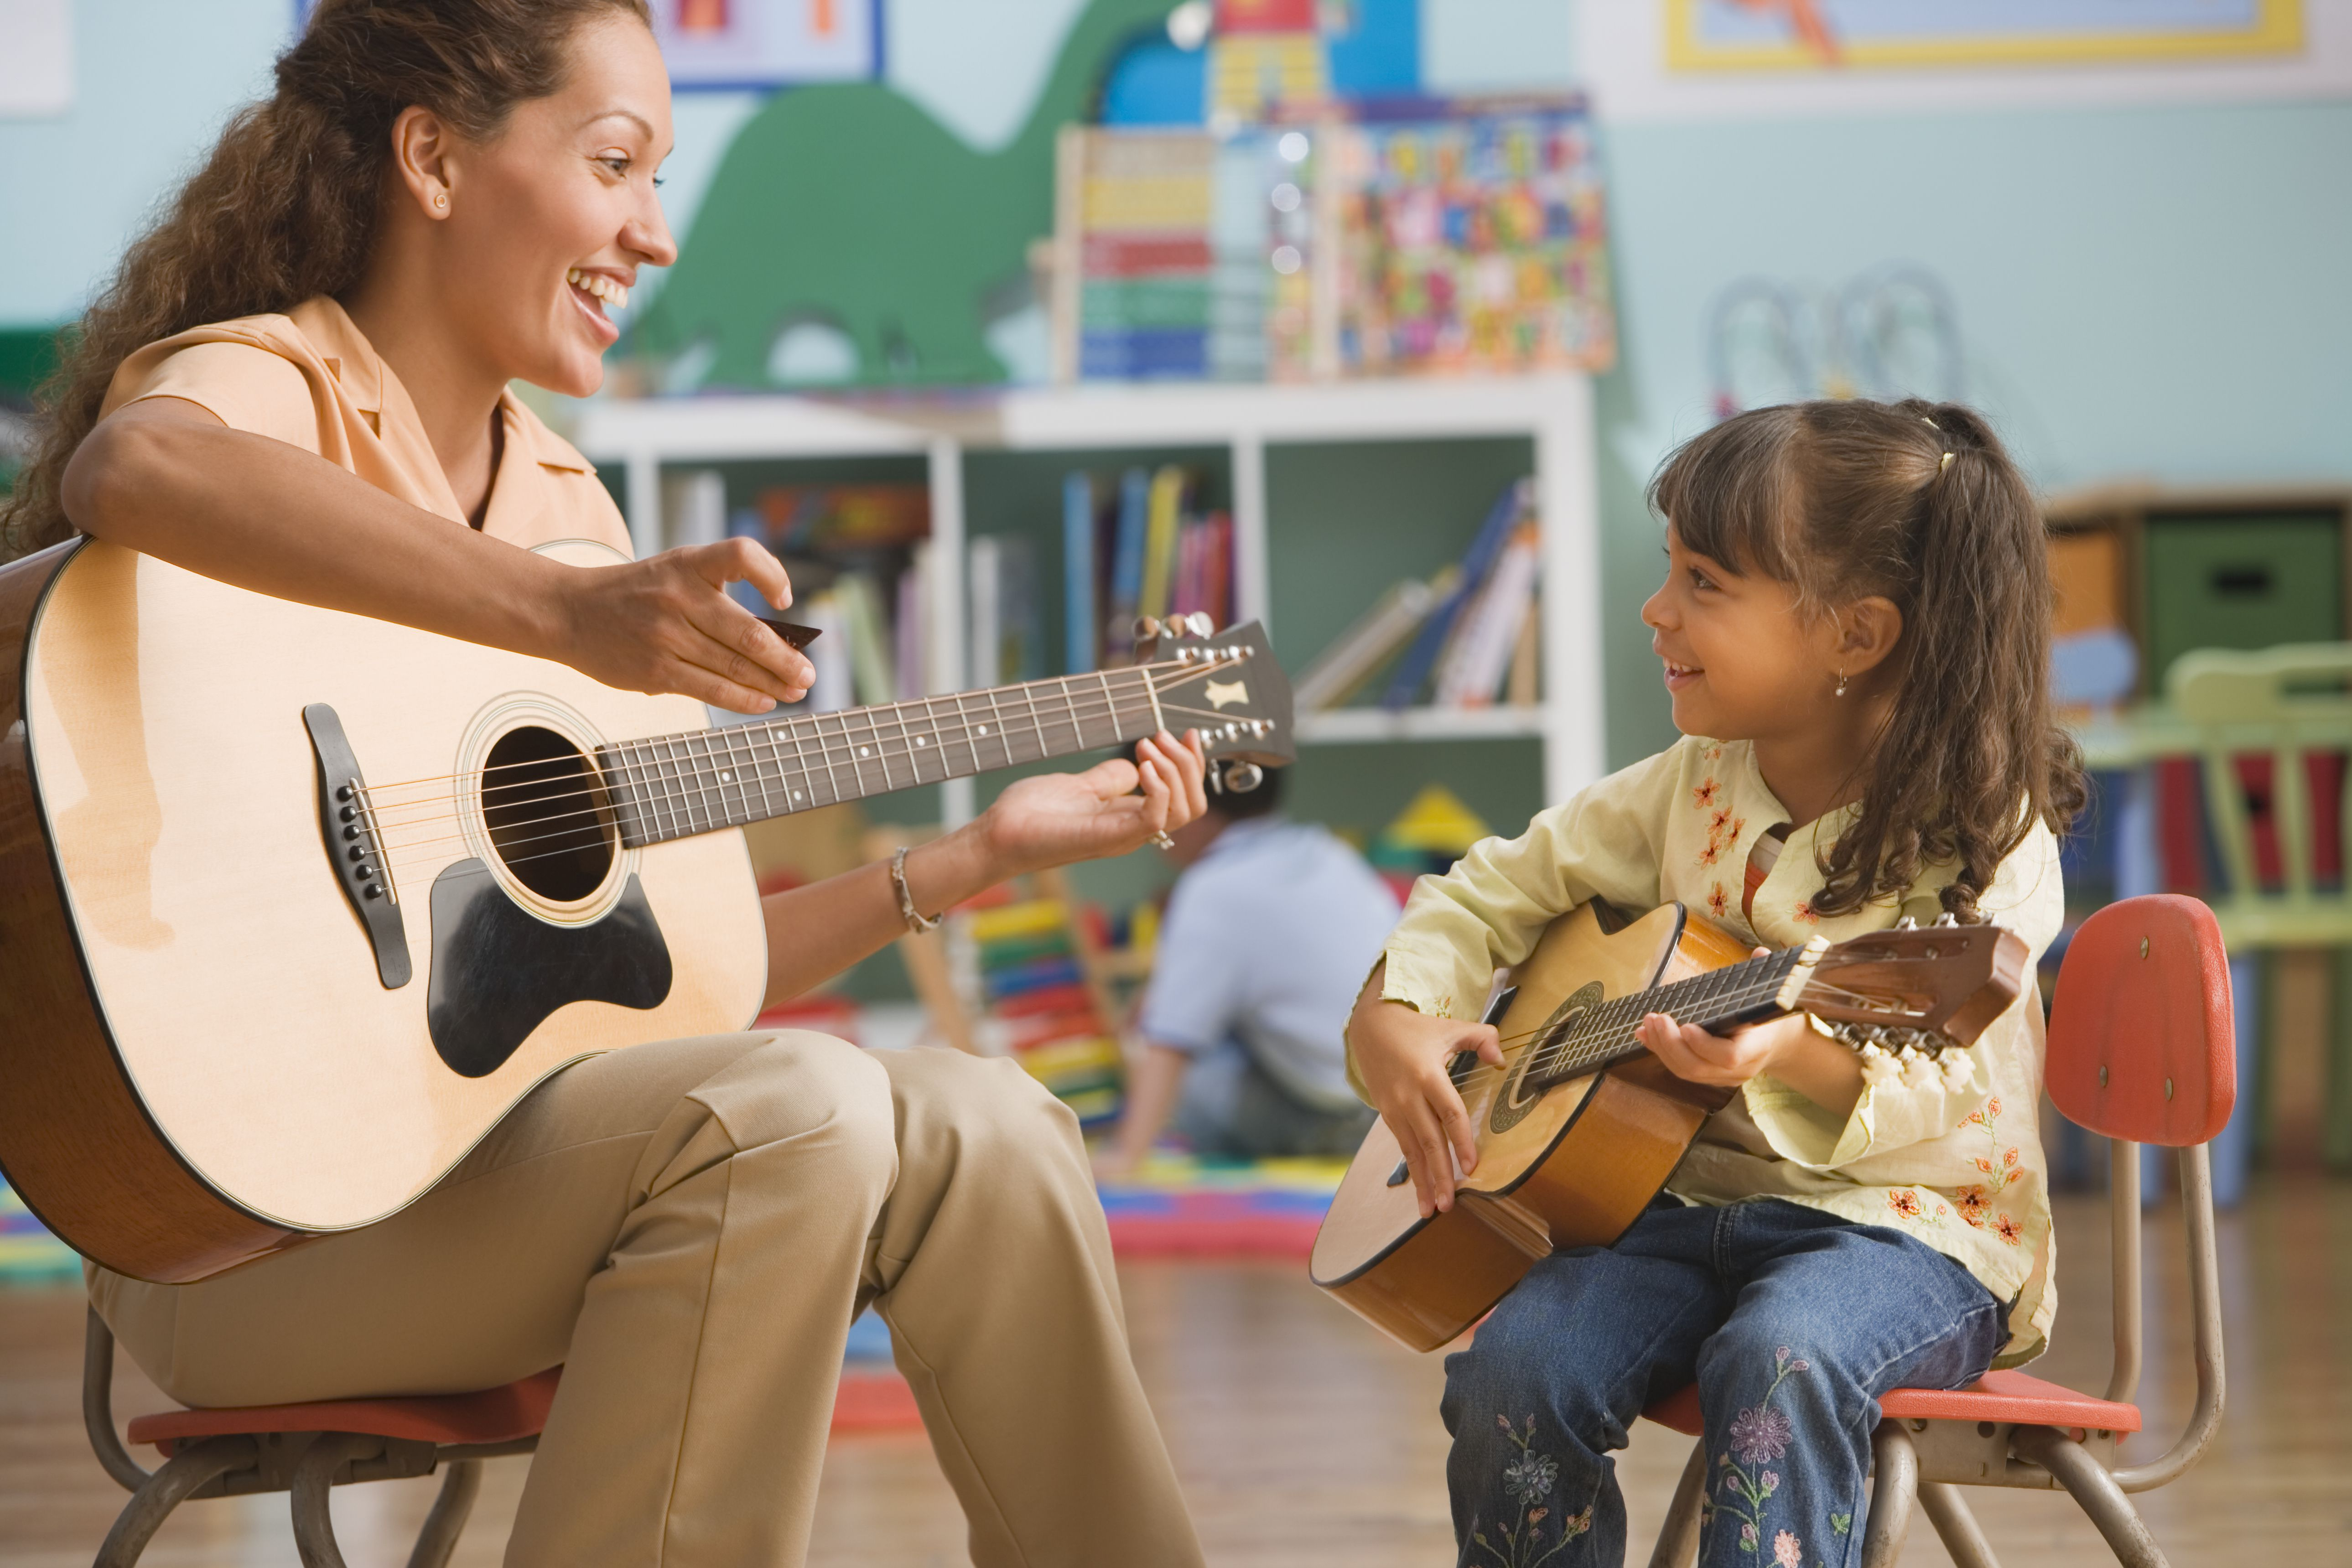 How To Teach Children Play Guitar Read Chord Diagrams Self Taught Lessons